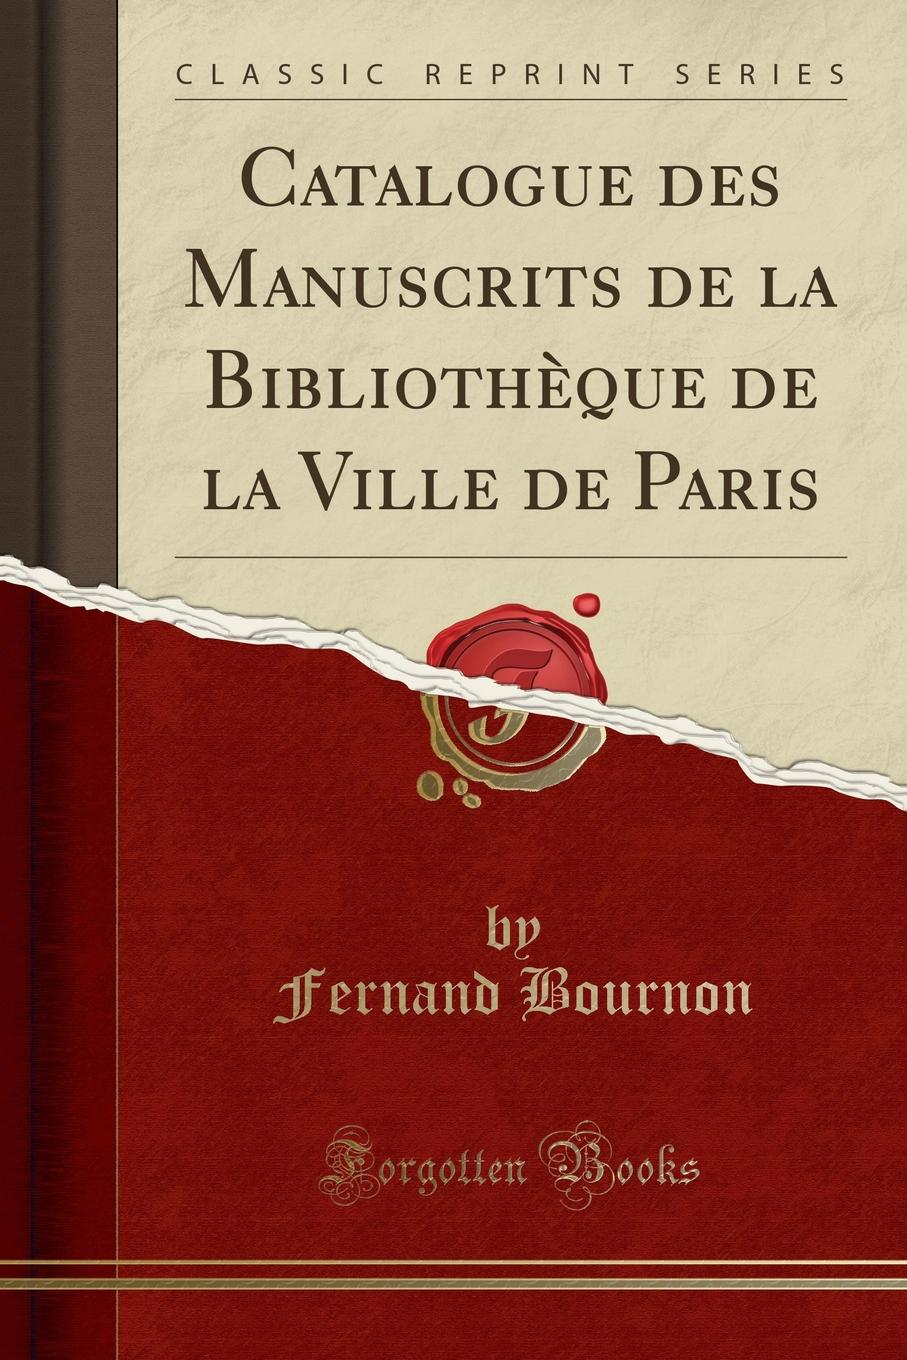 Fernand Bournon. Catalogue des Manuscrits de la Bibliotheque de la Ville de Paris (Classic Reprint)